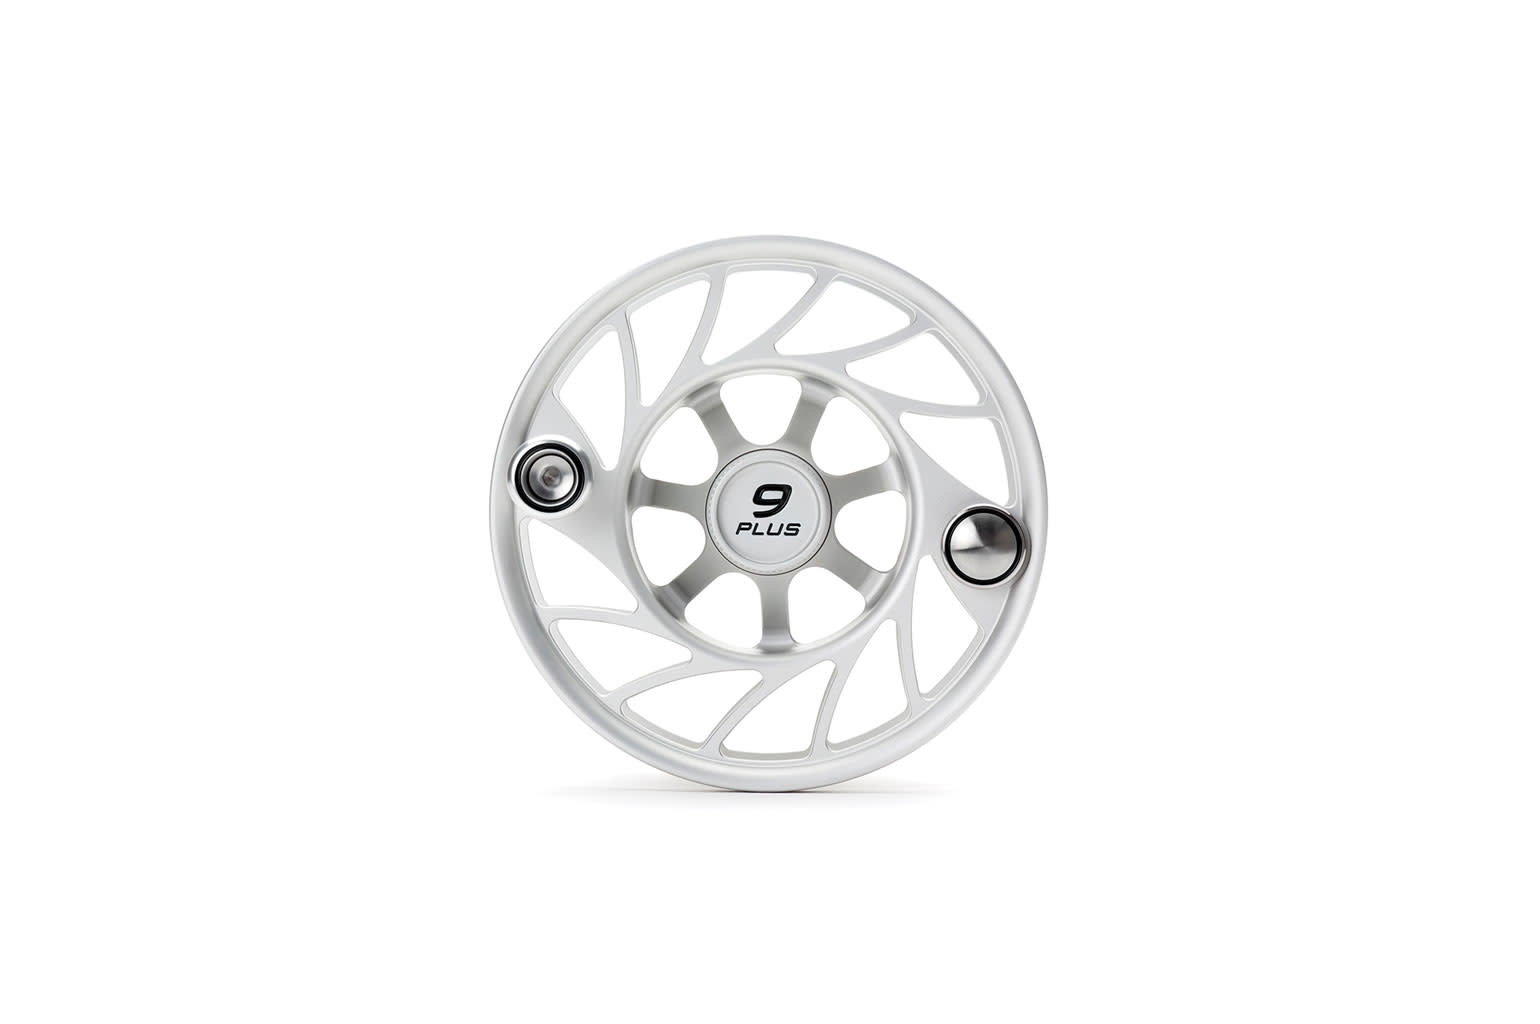 Hatch Hatch Gen 2 Finatic 9 Plus Extra Spool MA